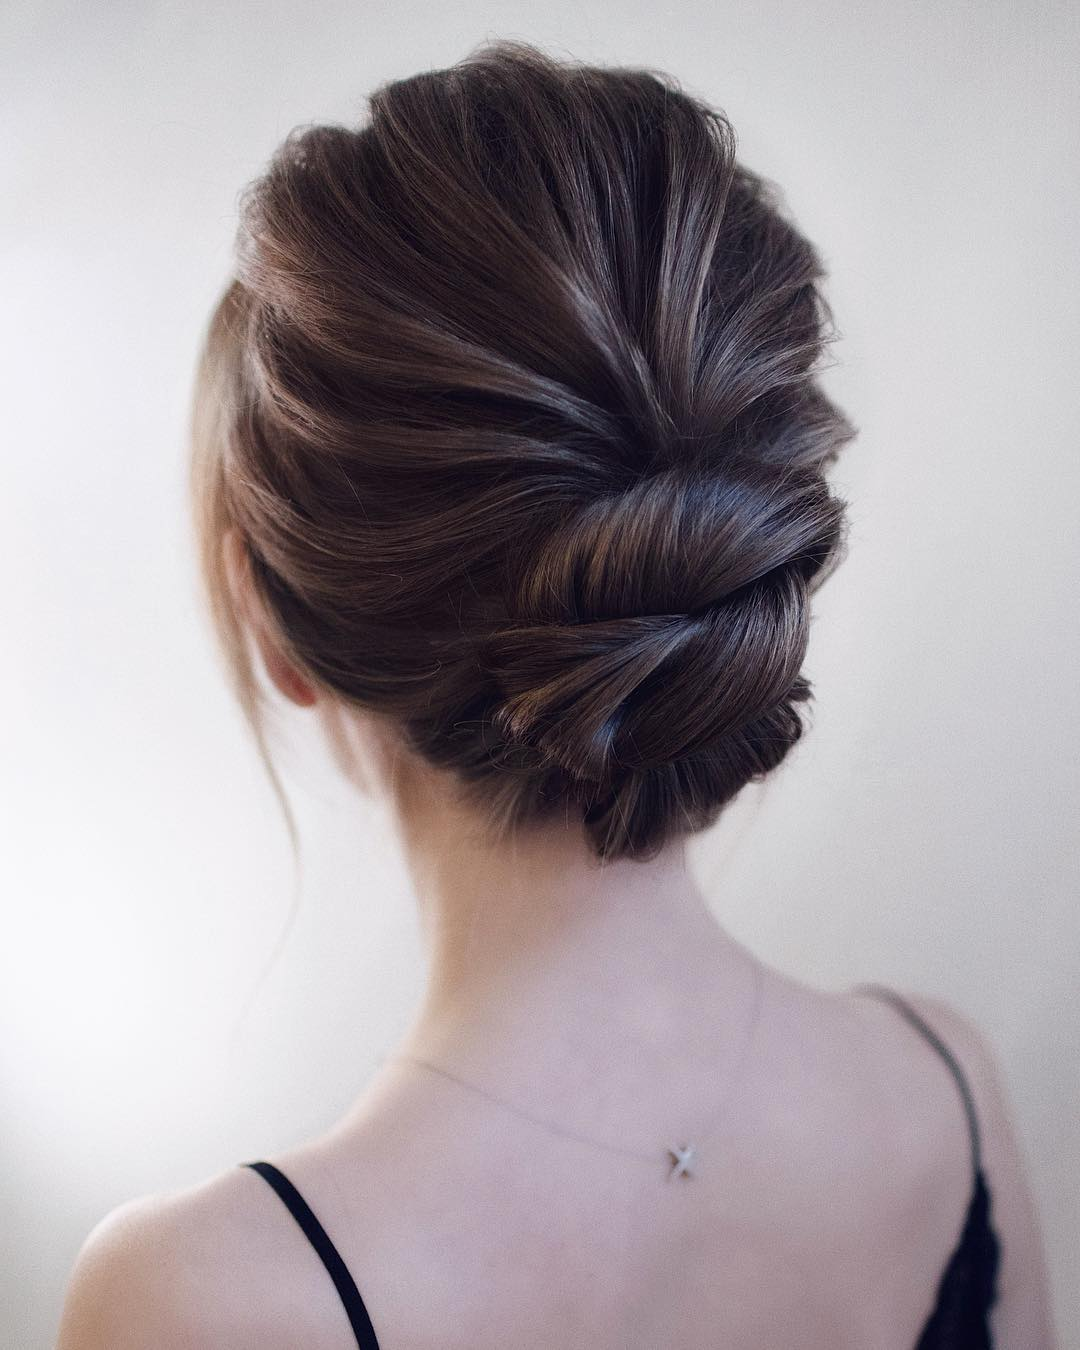 10 Updos For Medium Length Hair Prom Homecoming Hairstyle Ideas 2020